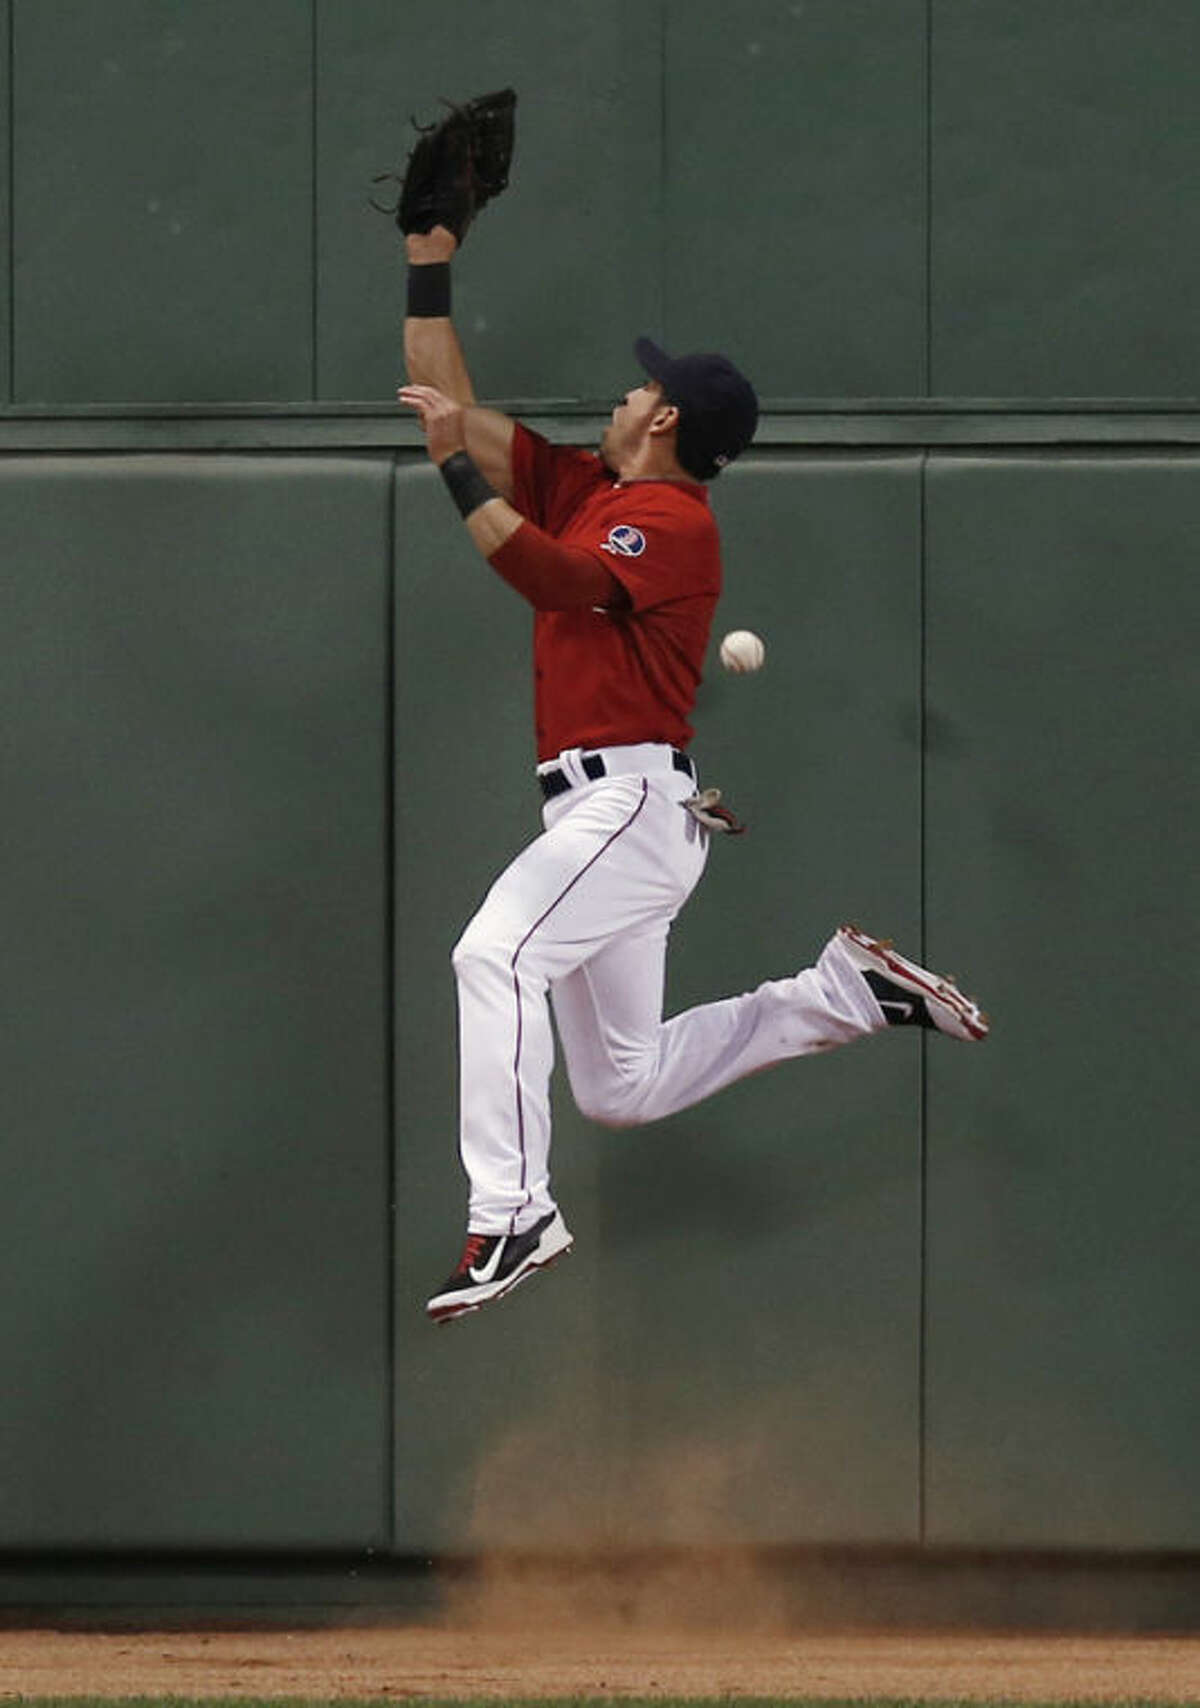 Boston Red Sox center fielder Jacoby Ellsbury can't catch a triple by New York Yankees' Eduardo Nunez during the fourth inning of a baseball game at Fenway Park in Boston Friday, Aug. 16, 2013. (AP Photo/Winslow Townson)